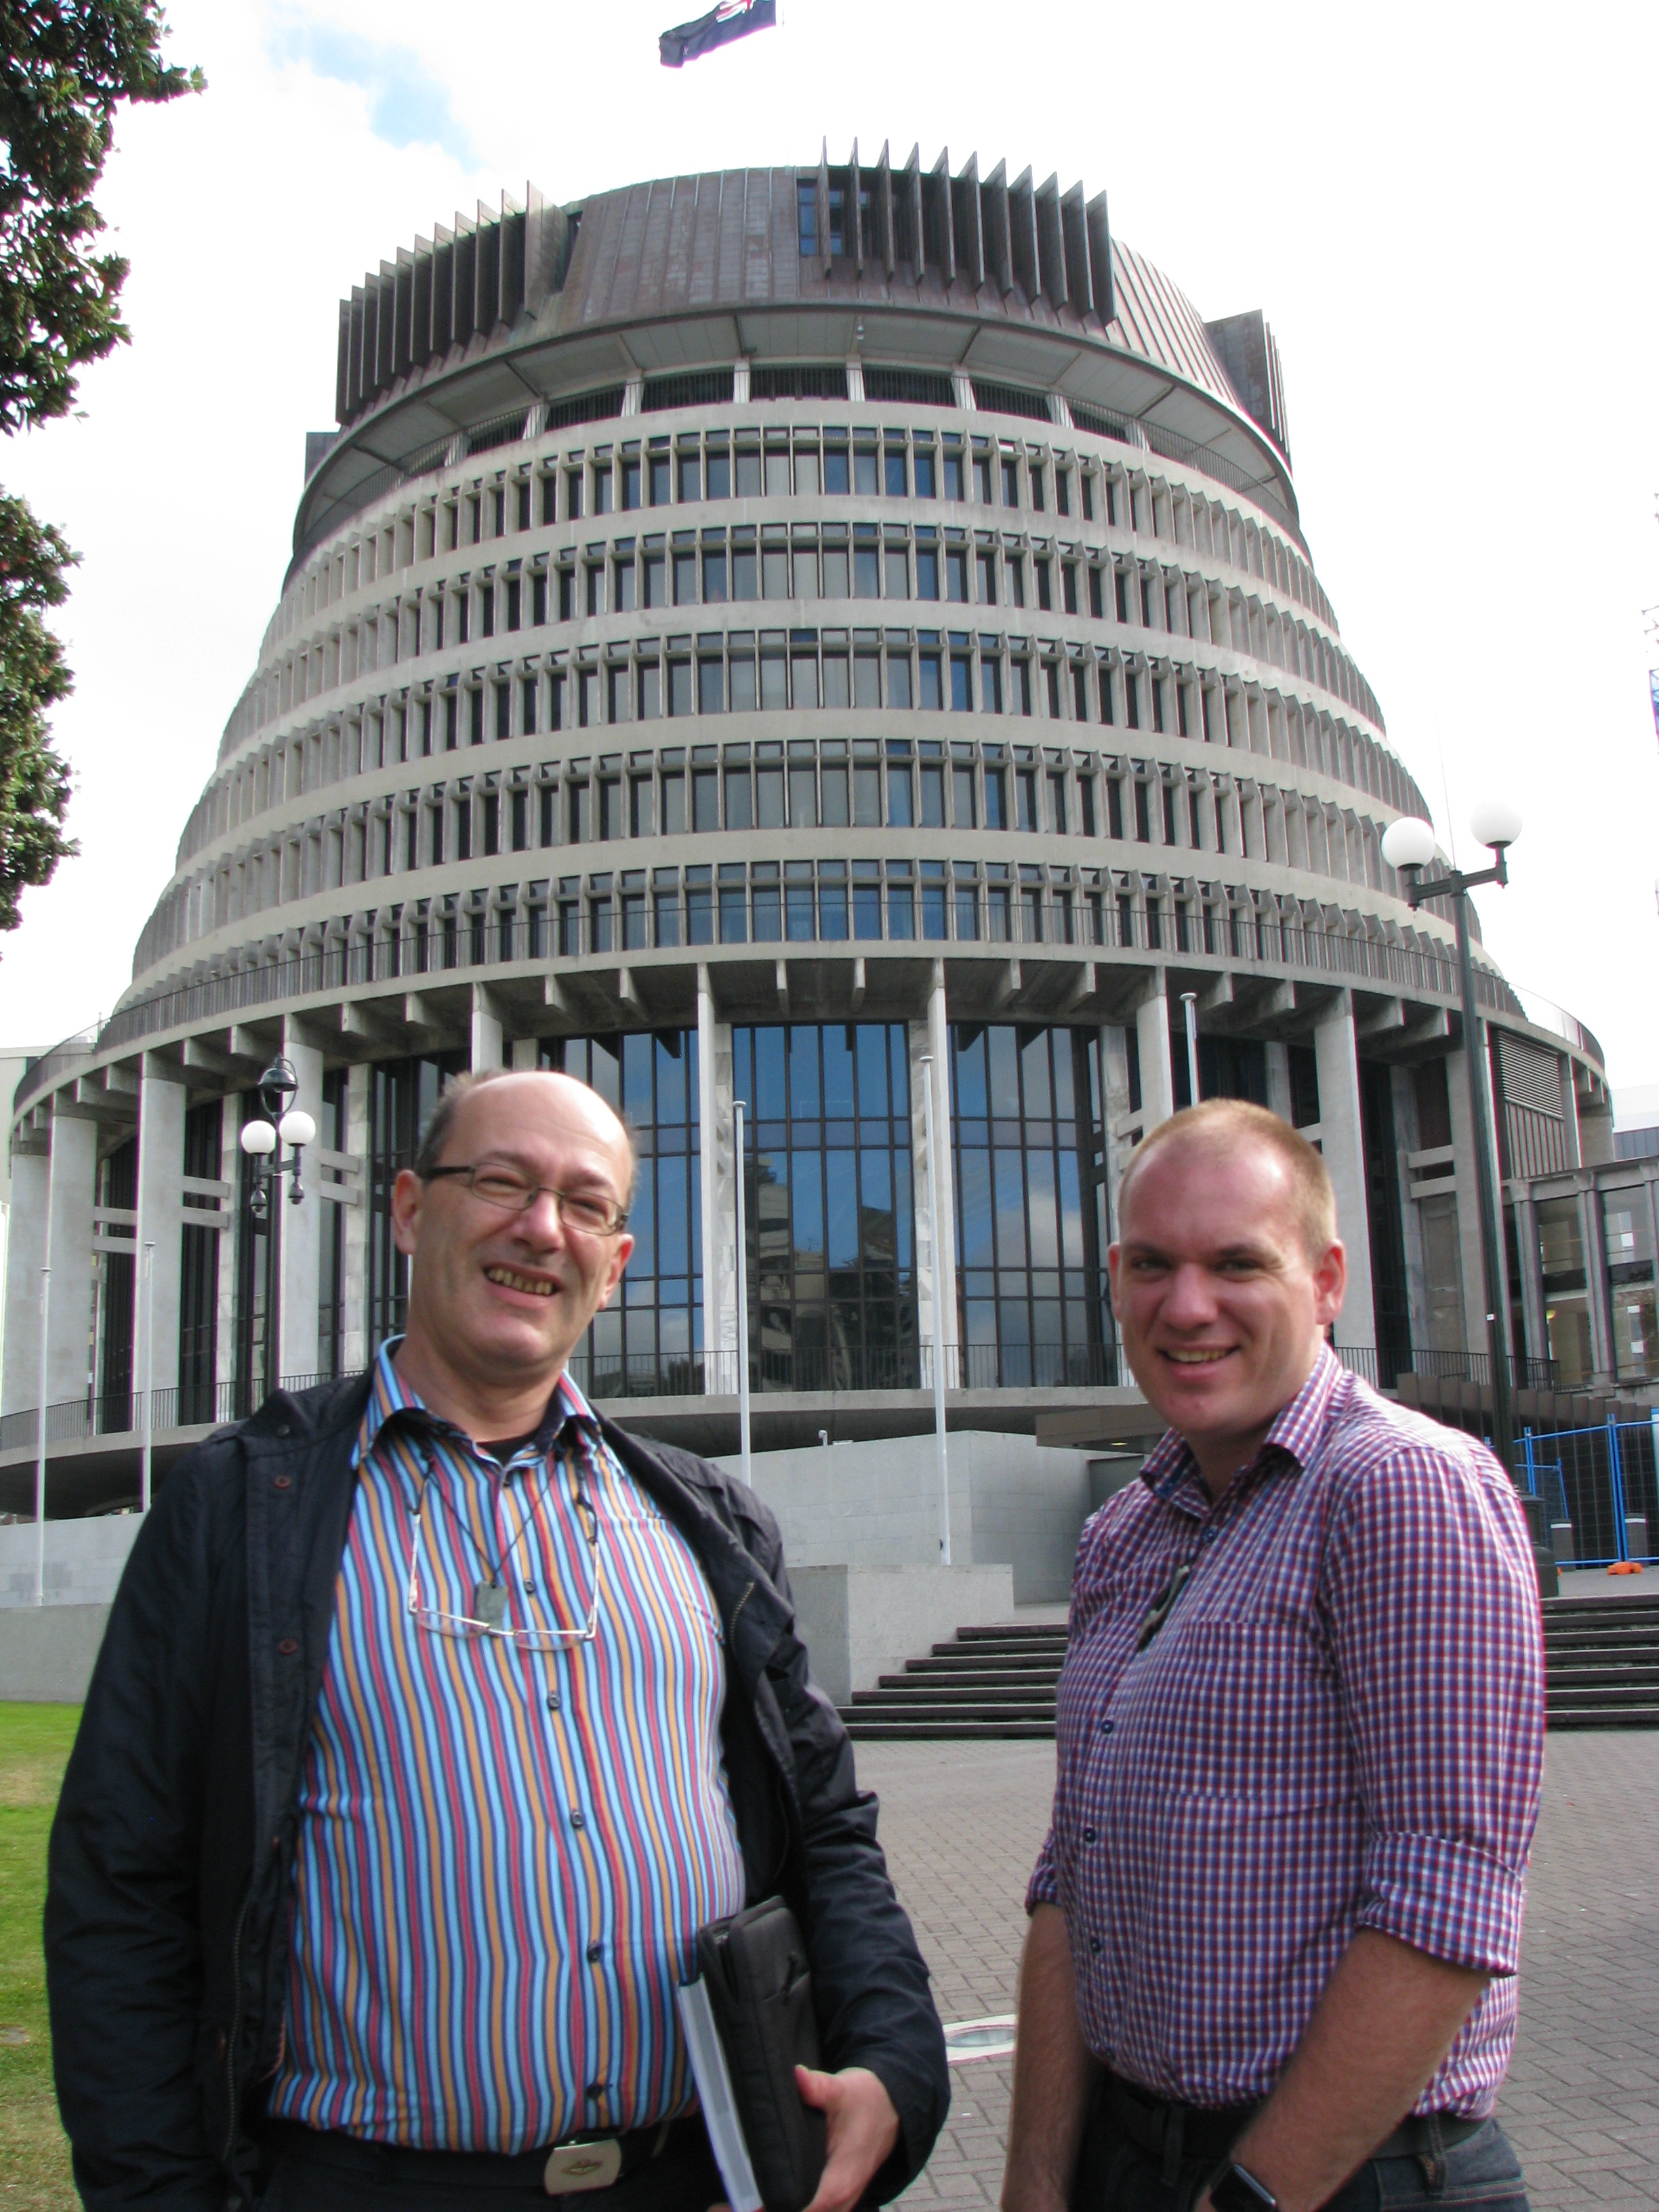 That would Homosexual law reform new zealand